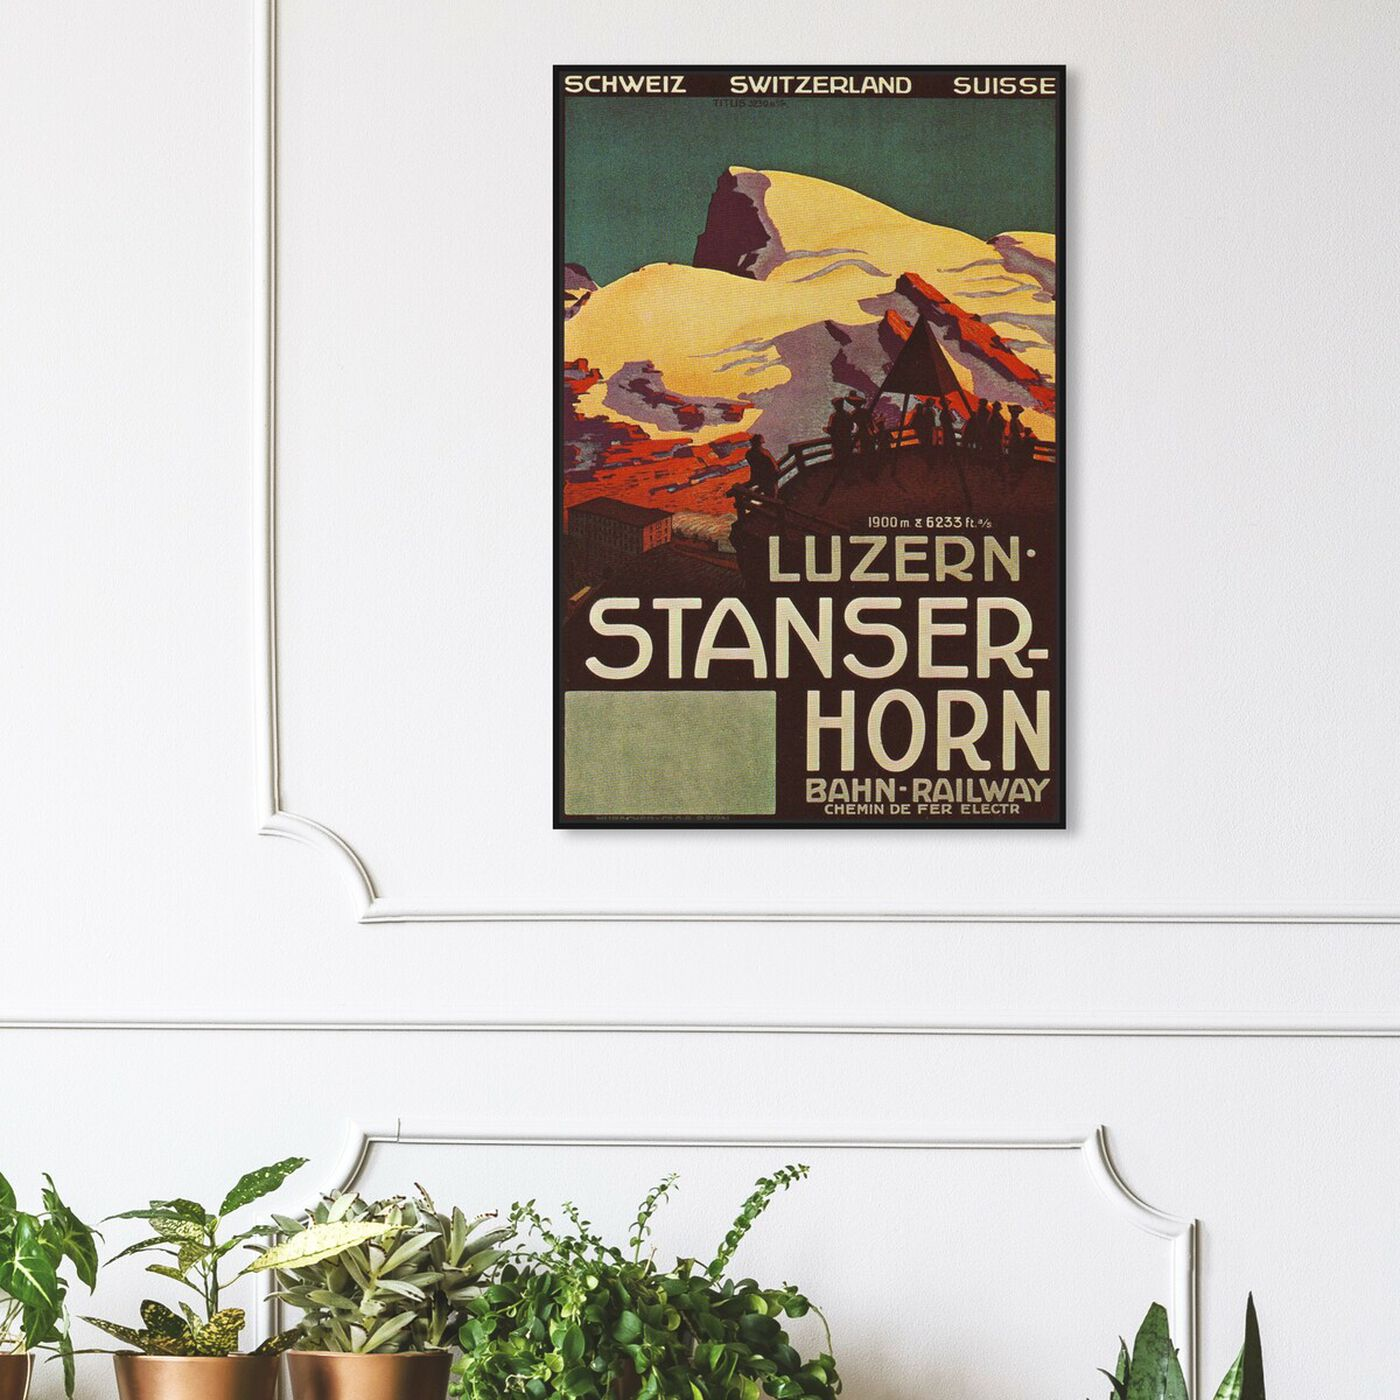 Hanging view of Stanser Horm featuring advertising and posters art.